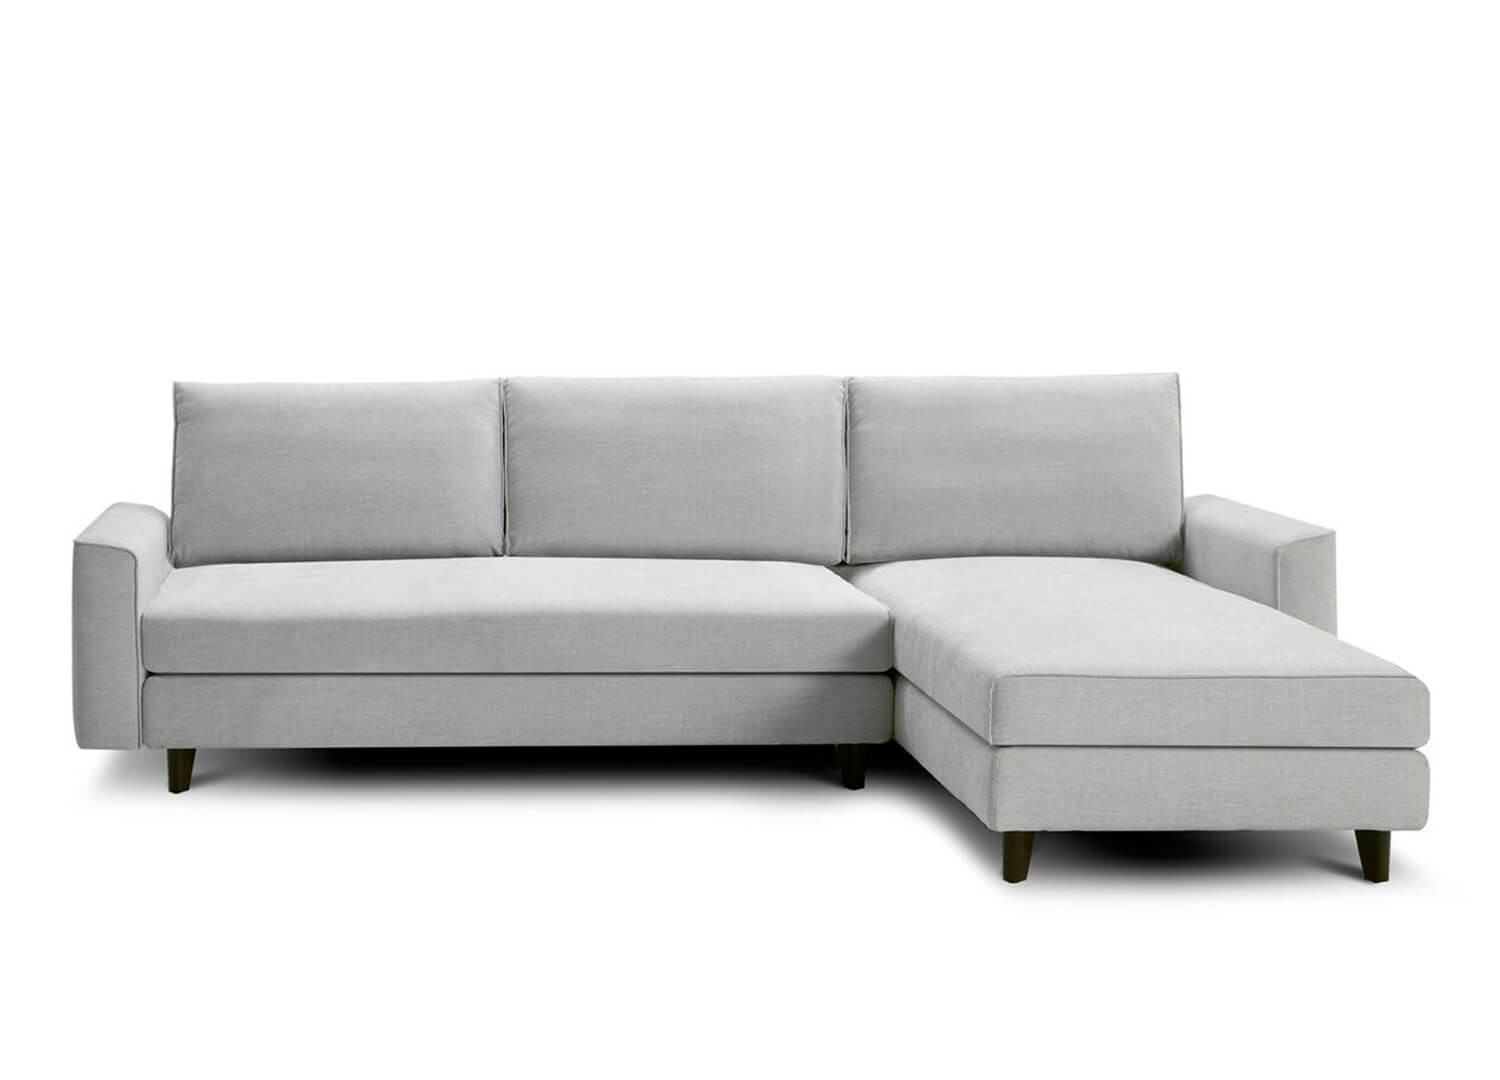 Est Living Design Directory King Living Delta Sofa 1 1